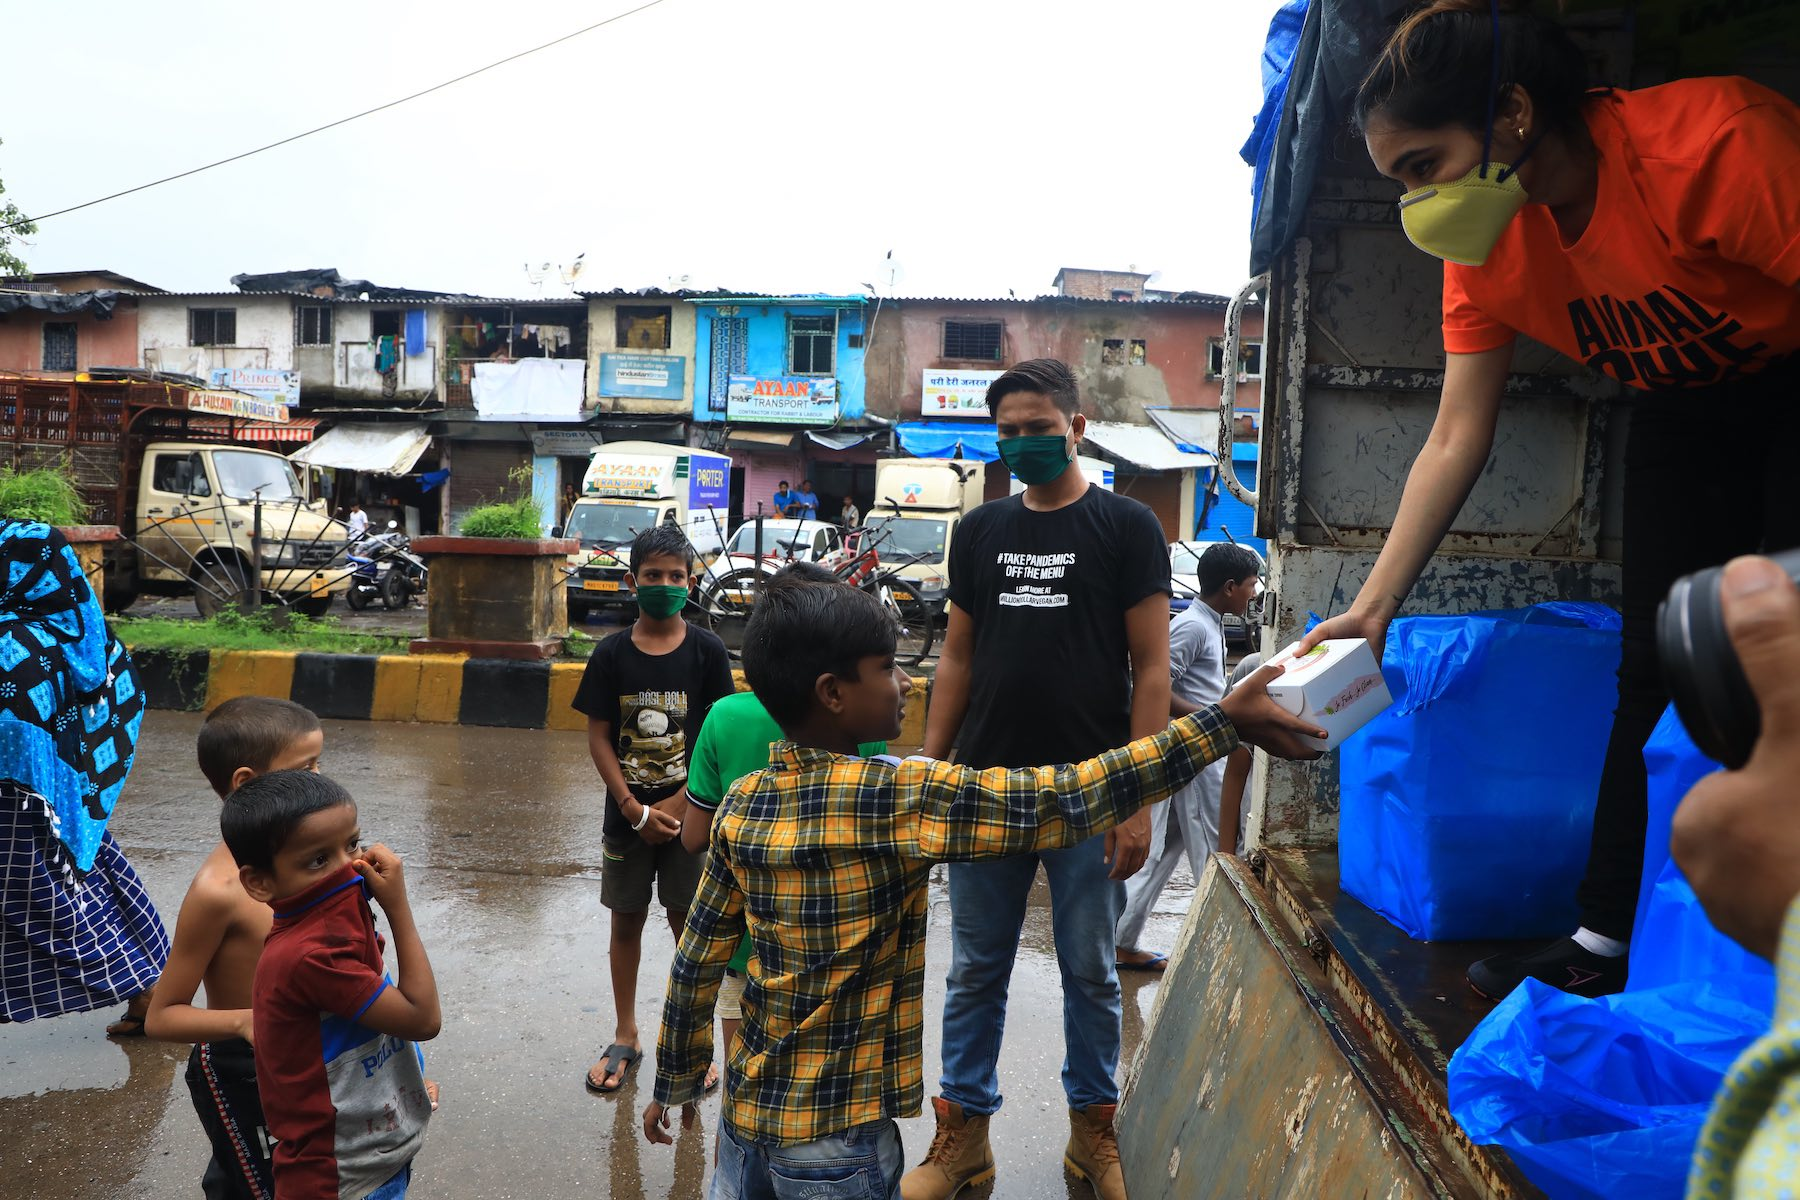 Vegan food aid for the Dharavi slums in Mumbai